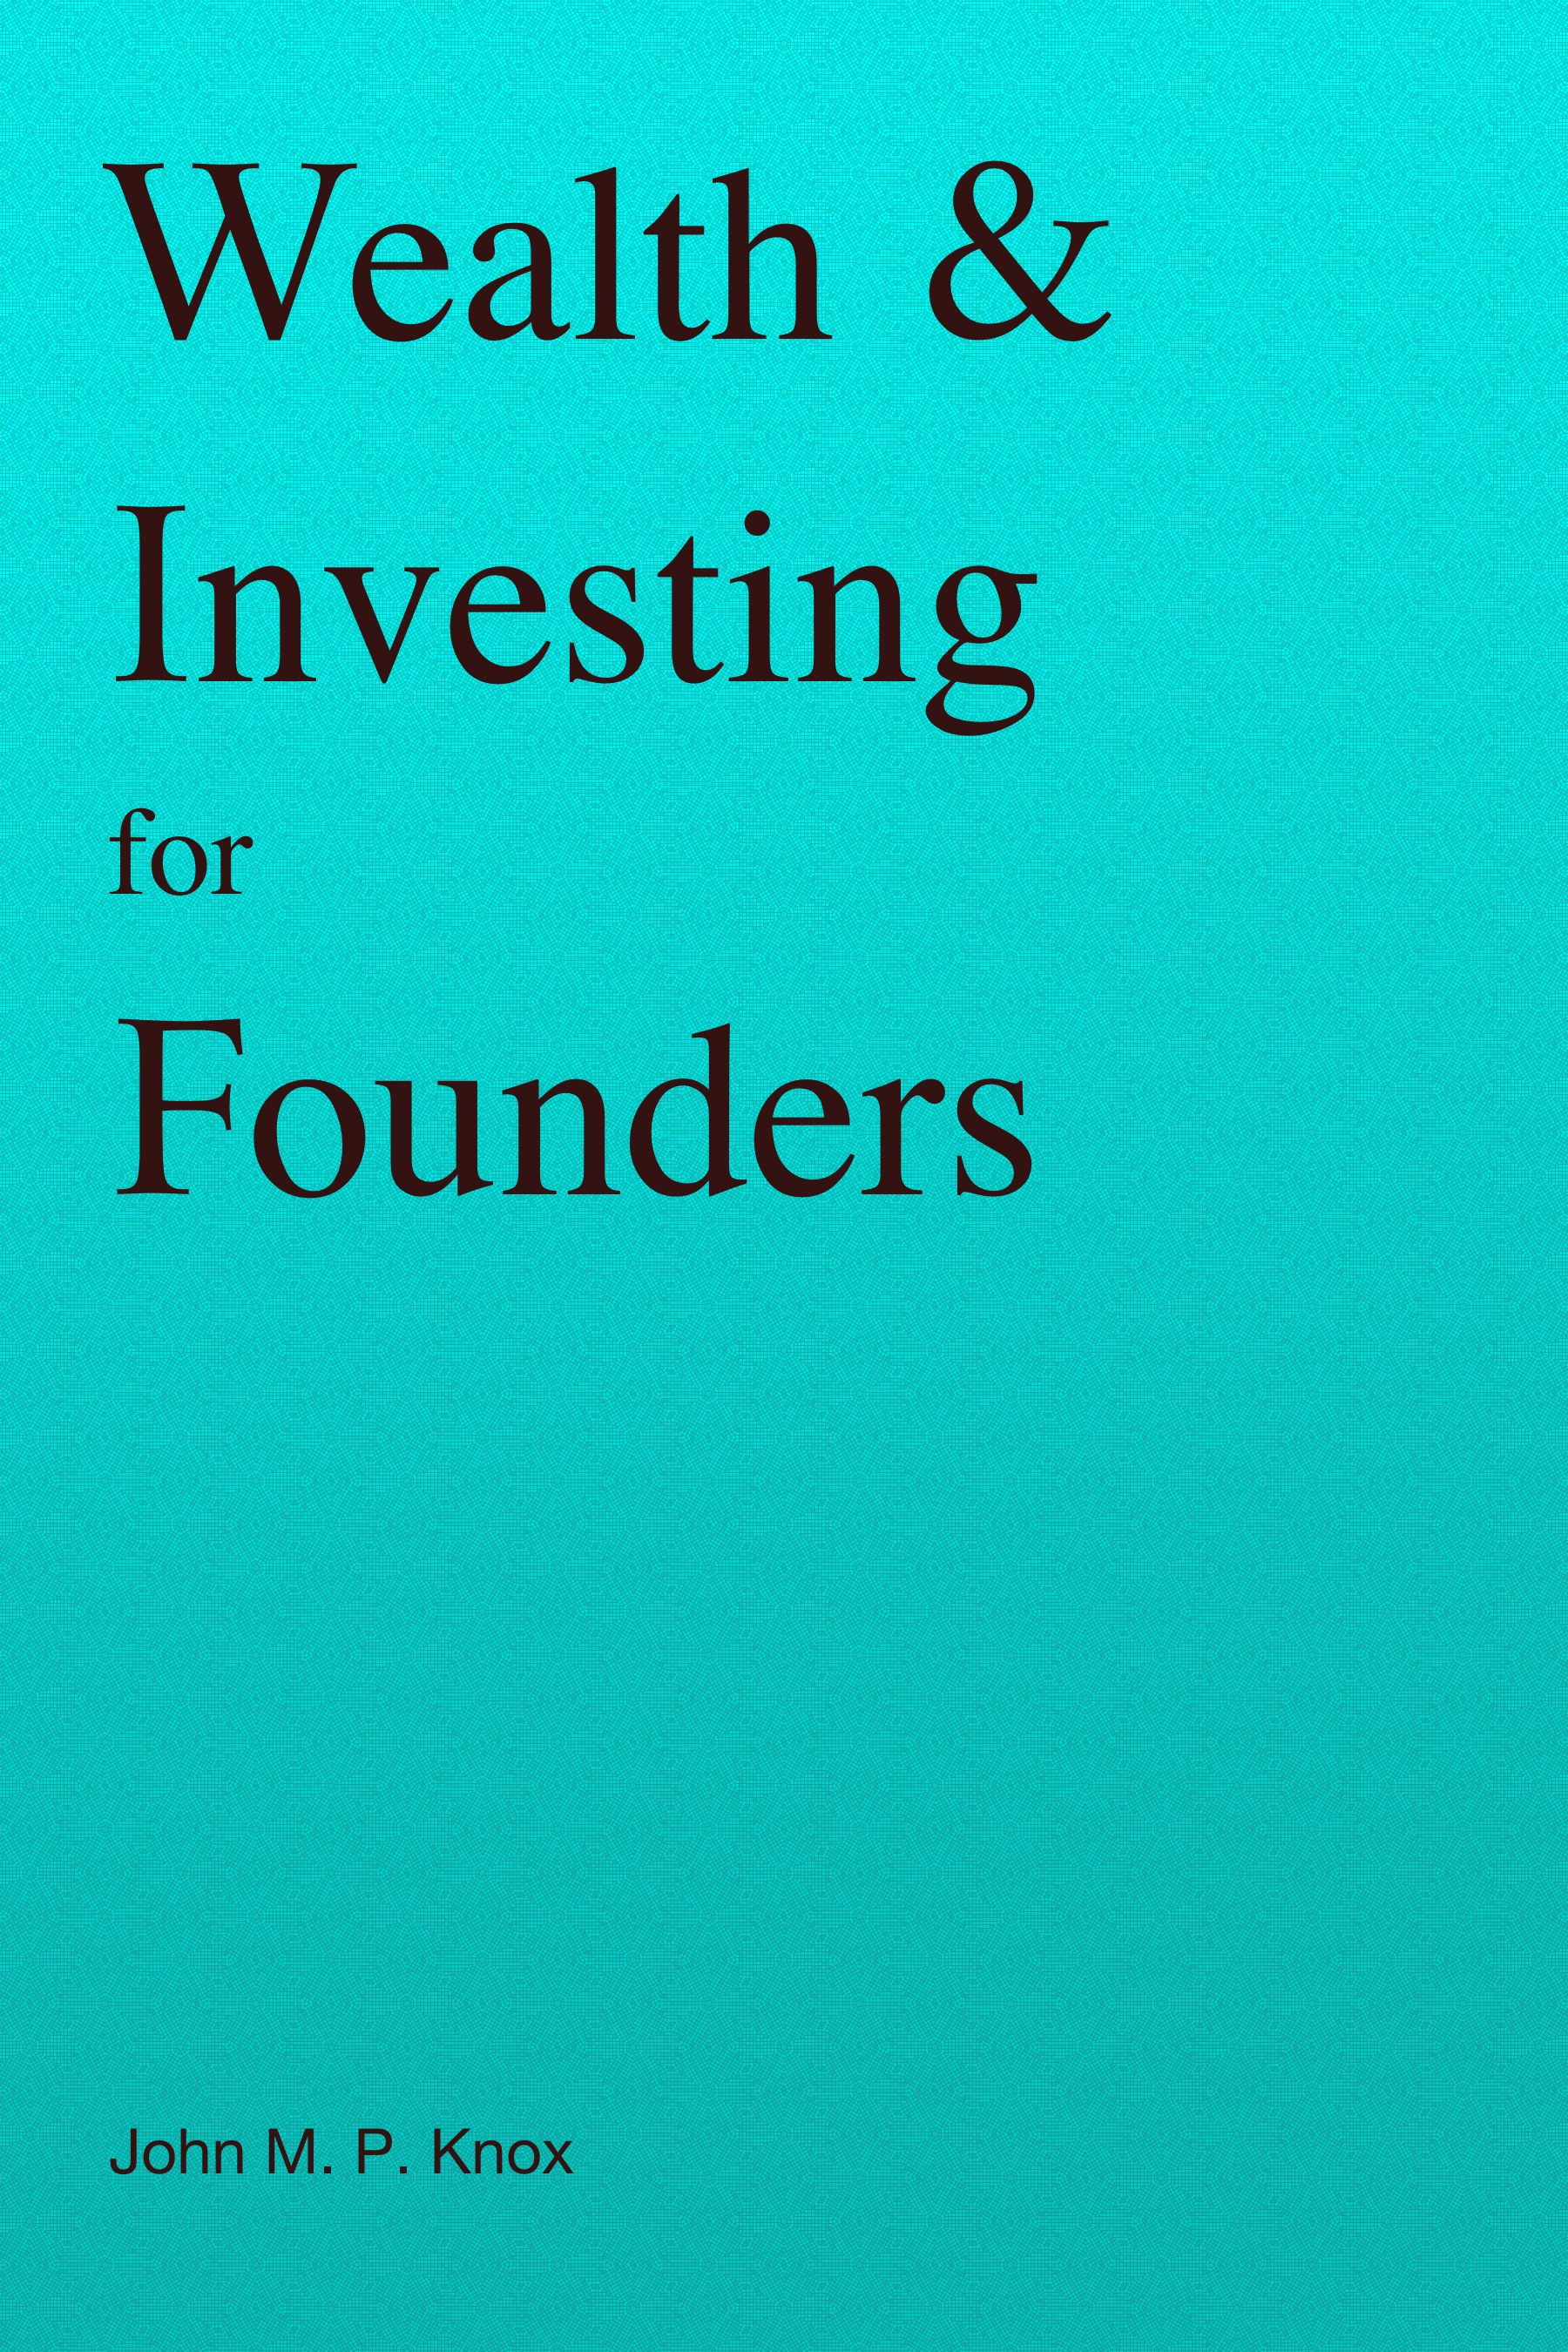 Image of the Wealth & investing for Founders book